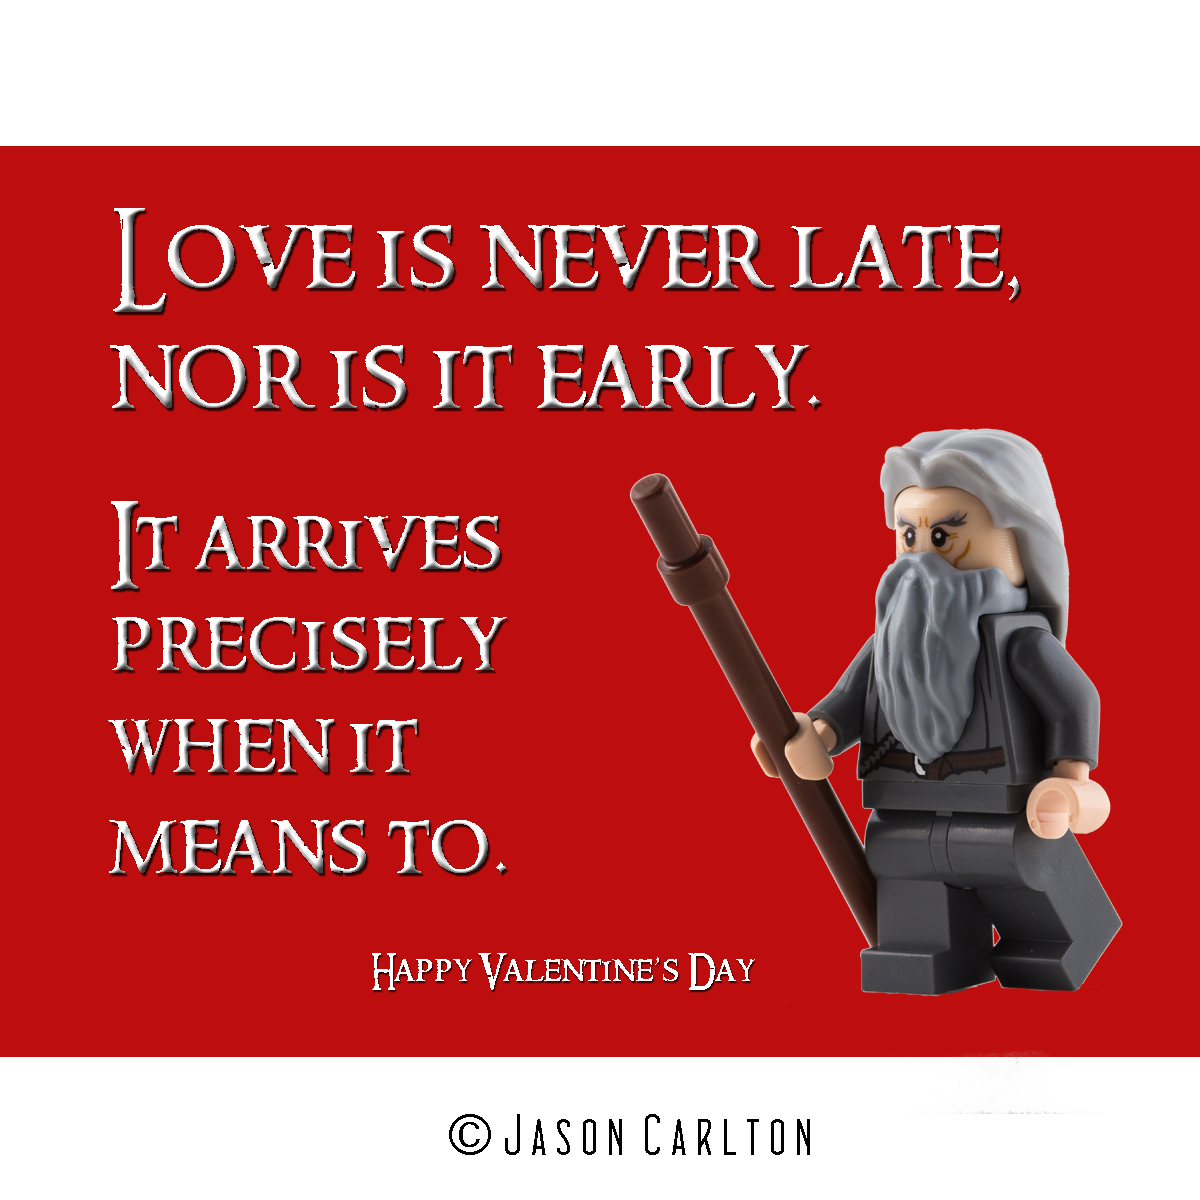 Schön Valentine Day Card Love Is Never Late Lego Gandalf Walking ...